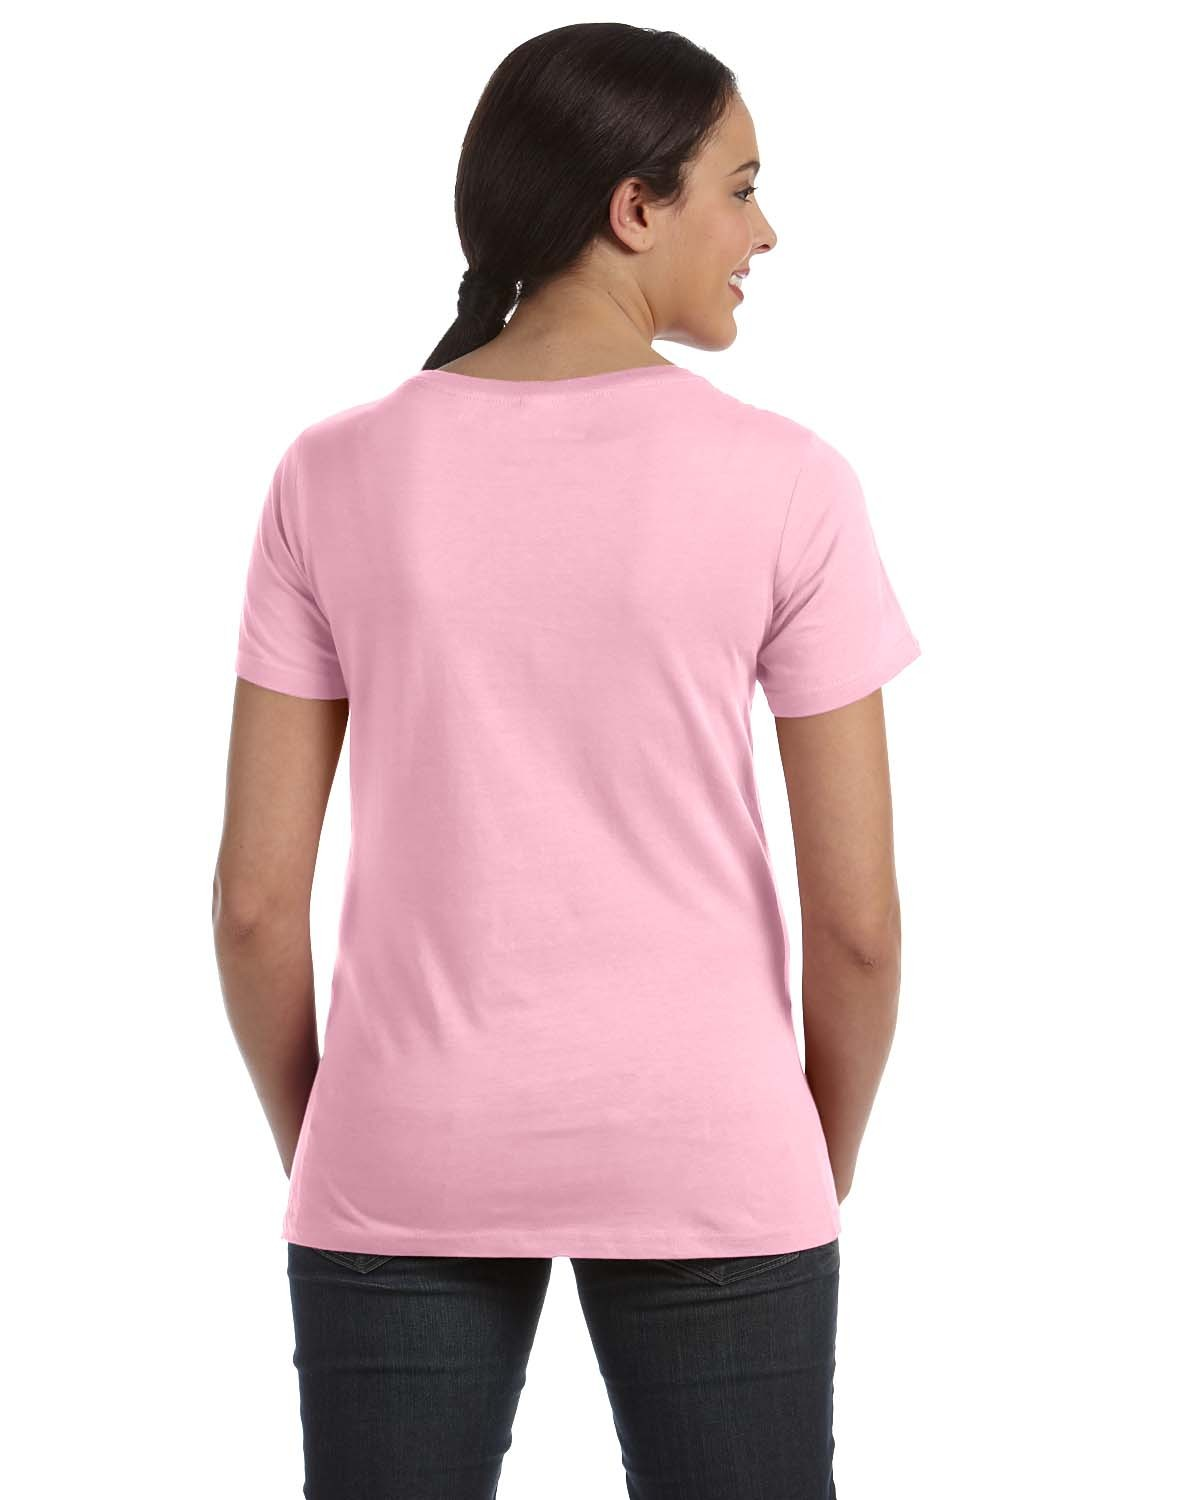 391A Anvil CHARITY PINK